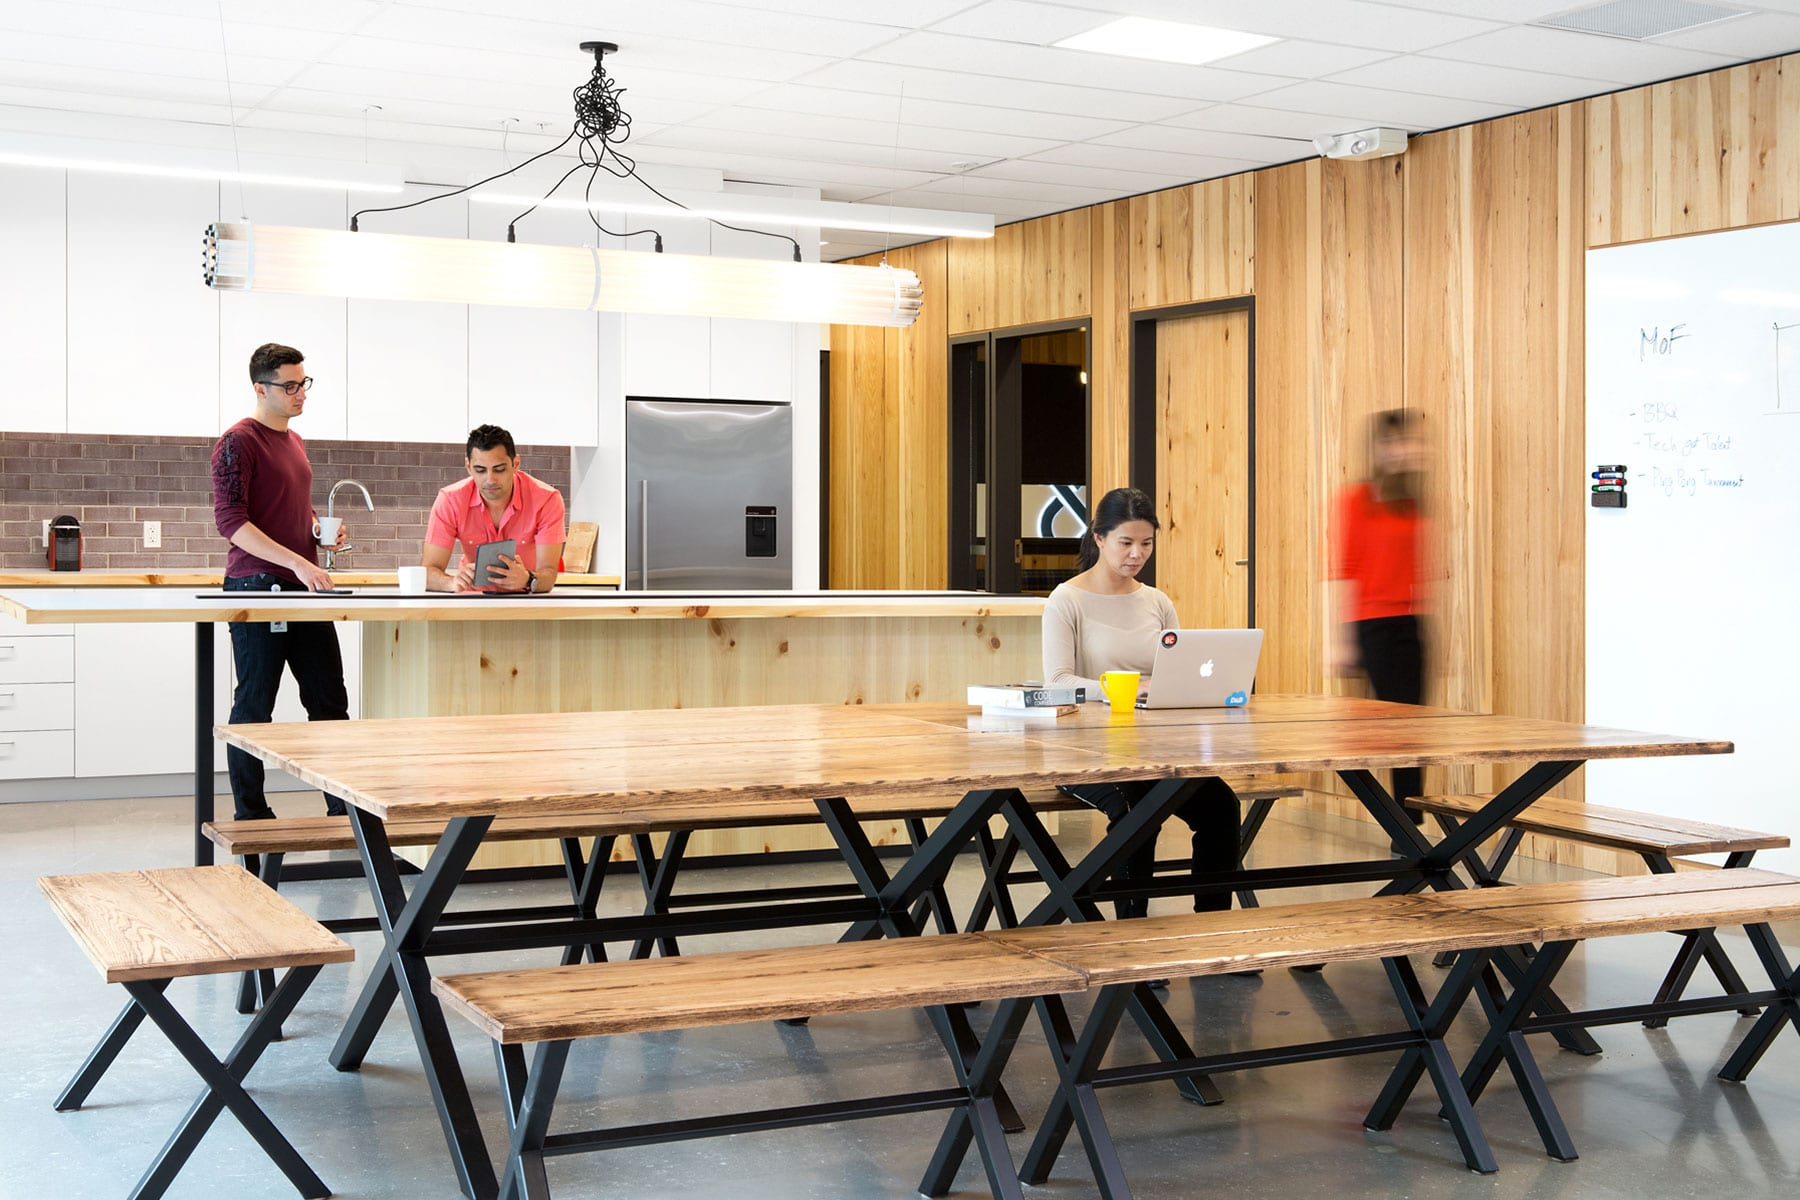 Hickory wood paneling, concrete floors and specialized lighting at staff kitchen area